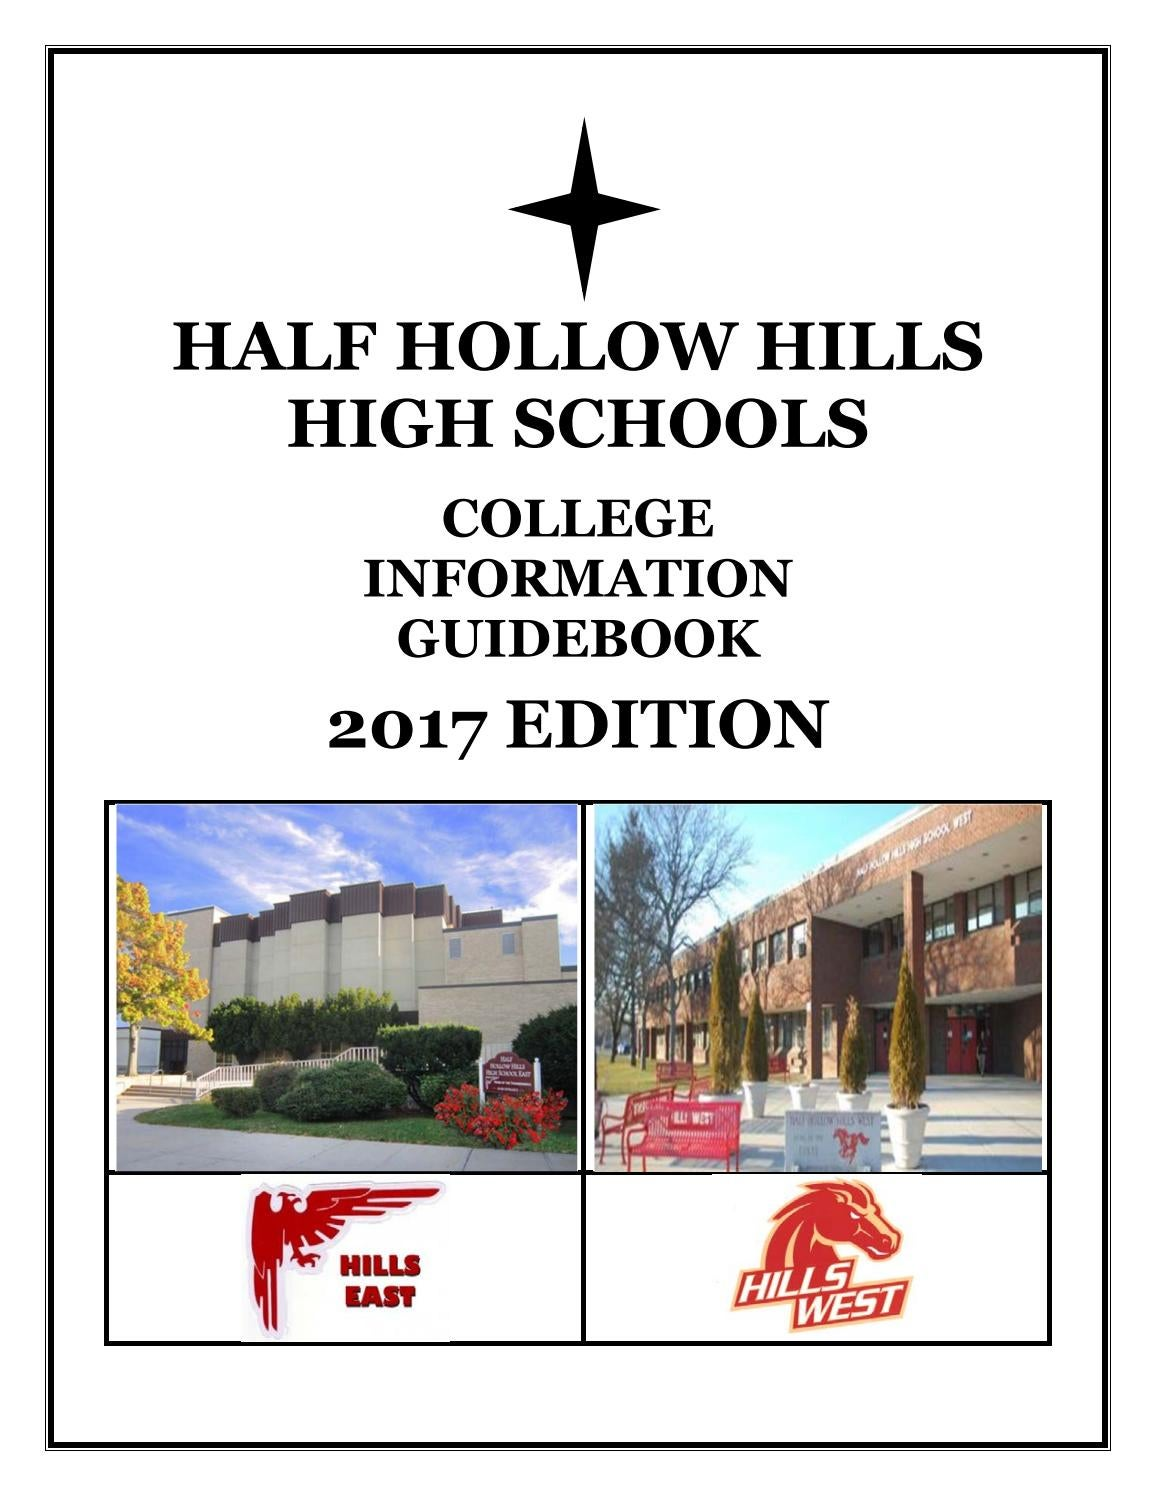 College Information Guidebook 2017 Final By Half Hollow Hills For The Circuit Shown Input Is Current So Cheggcom Schools Issuu